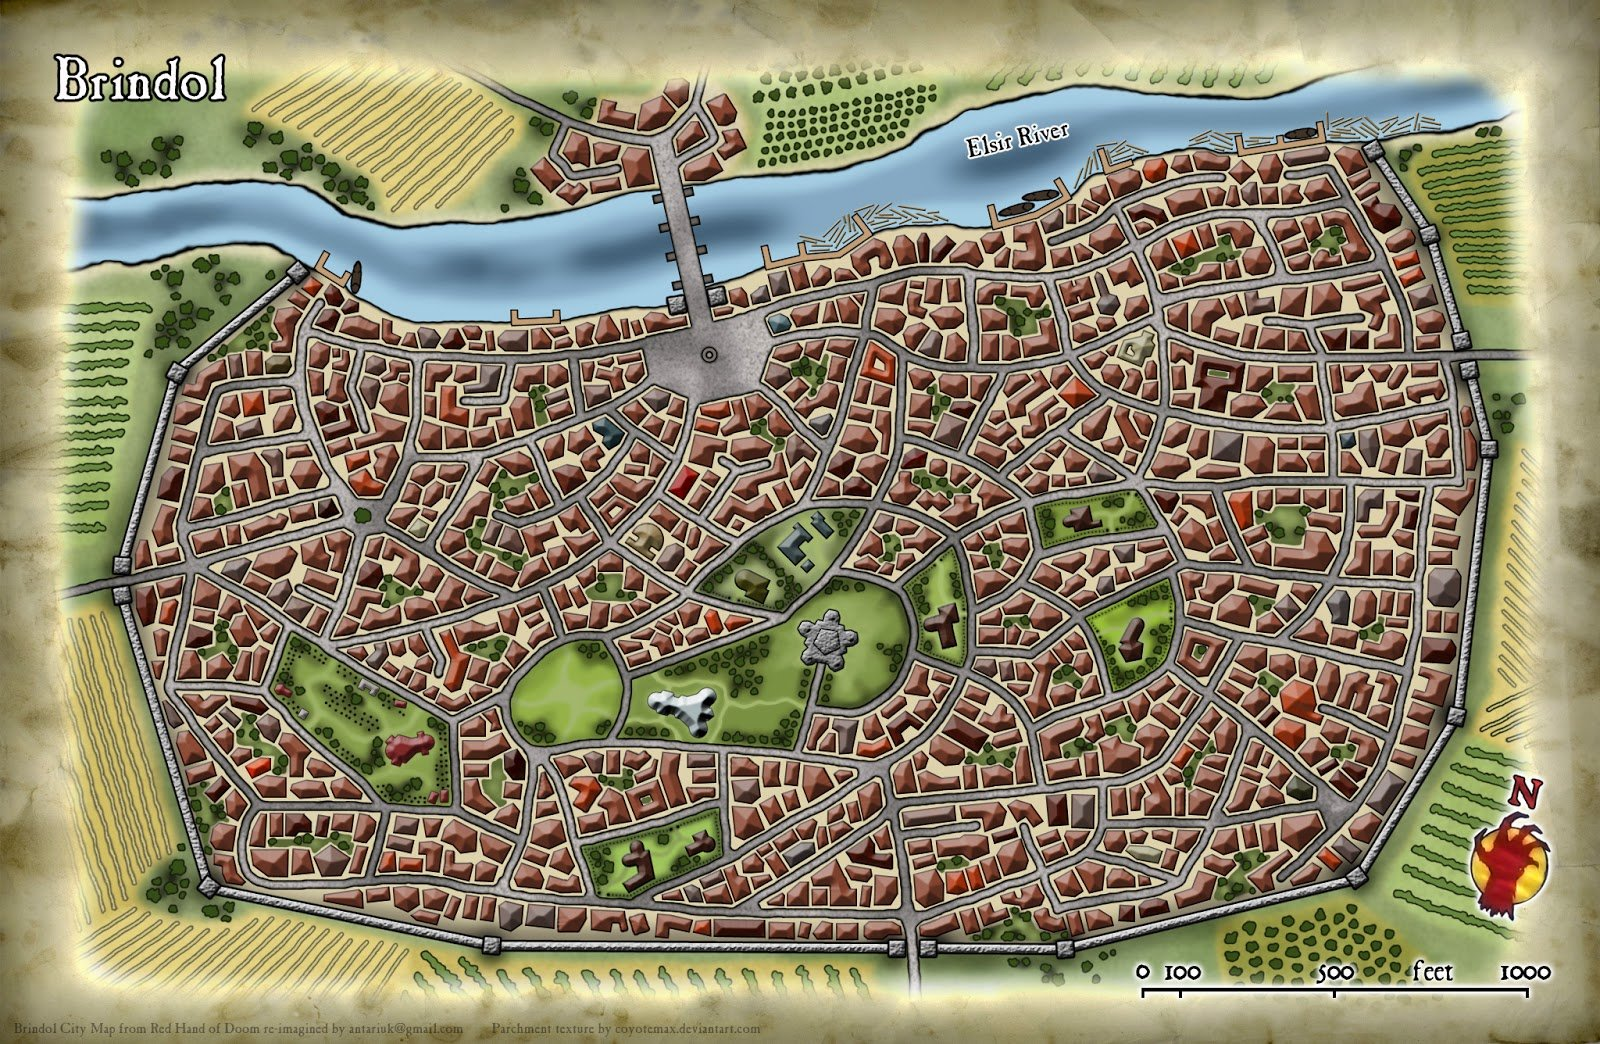 ArtStation - Dungeons & Dragons - Red Hand of Doom: Brindol City Map on